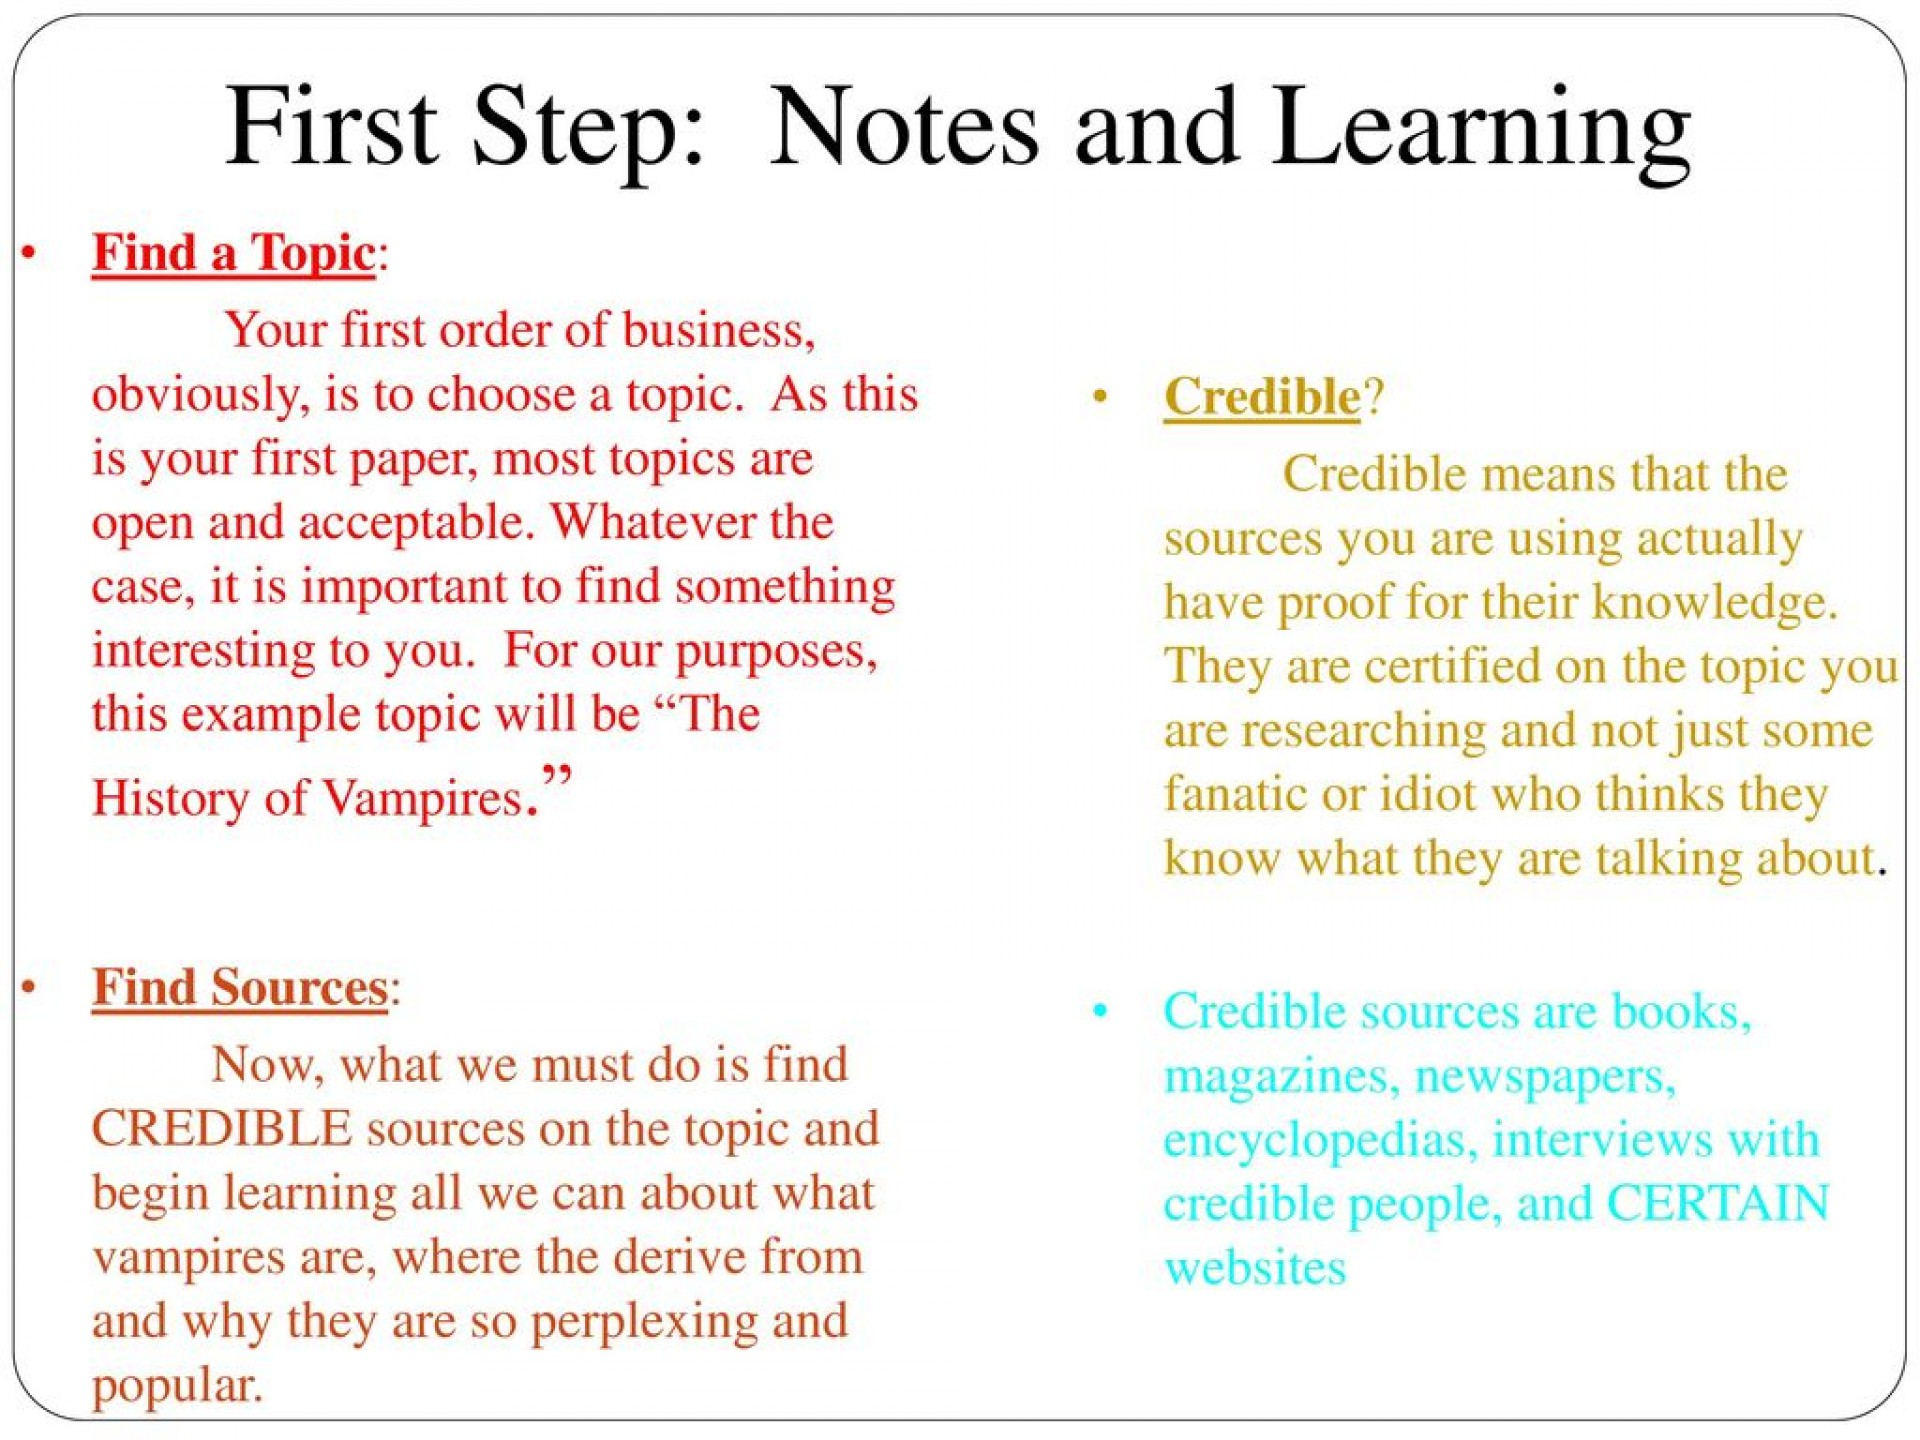 006 Firststep3anotesandlearning Research Paper How To Do Unusual Presentation Start An Oral On A Make Ppt For 1920